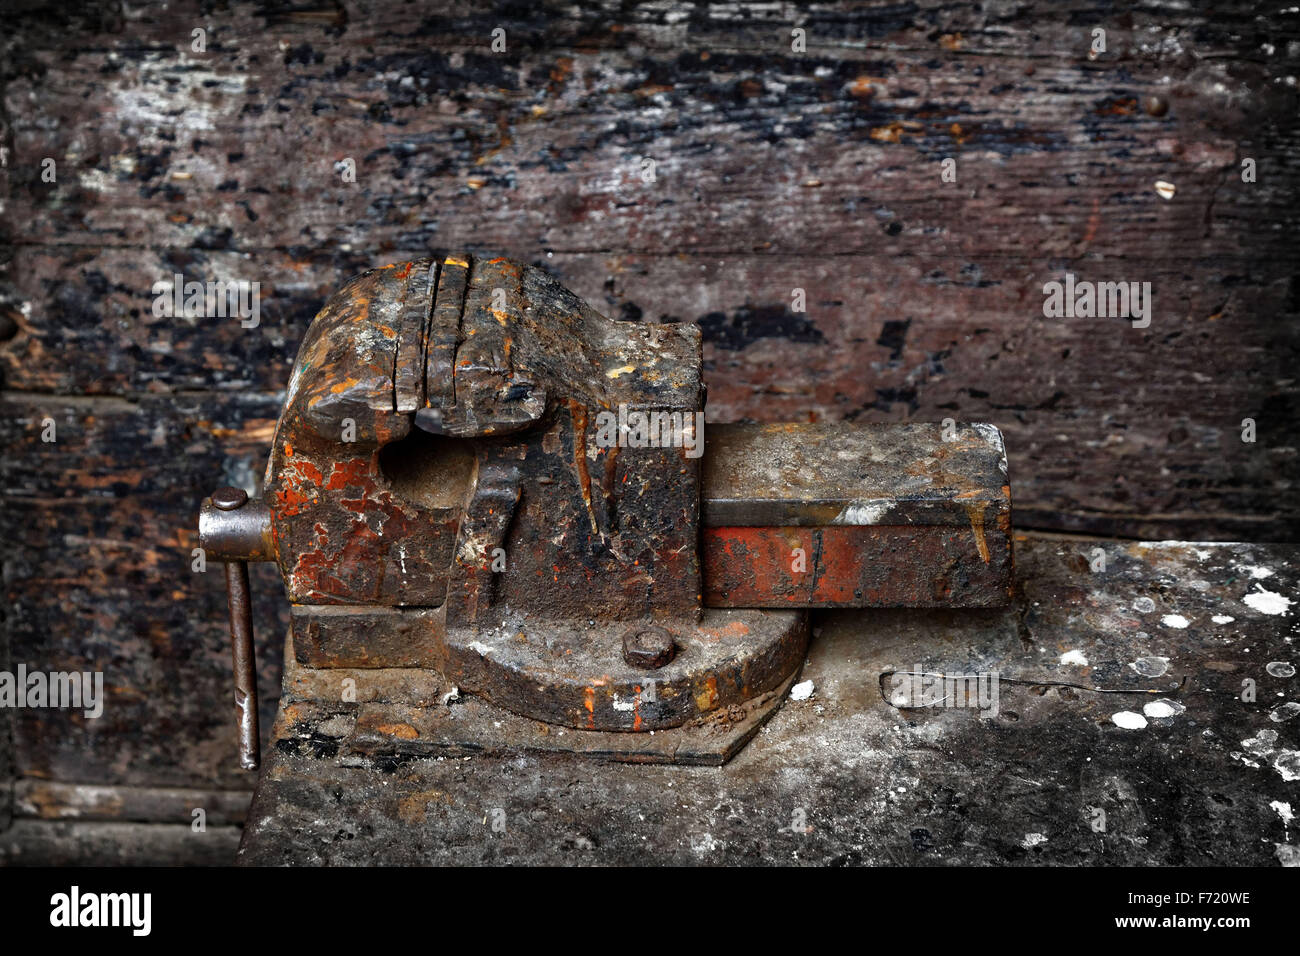 An old weathered and rusted vice on a workbench. - Stock Image